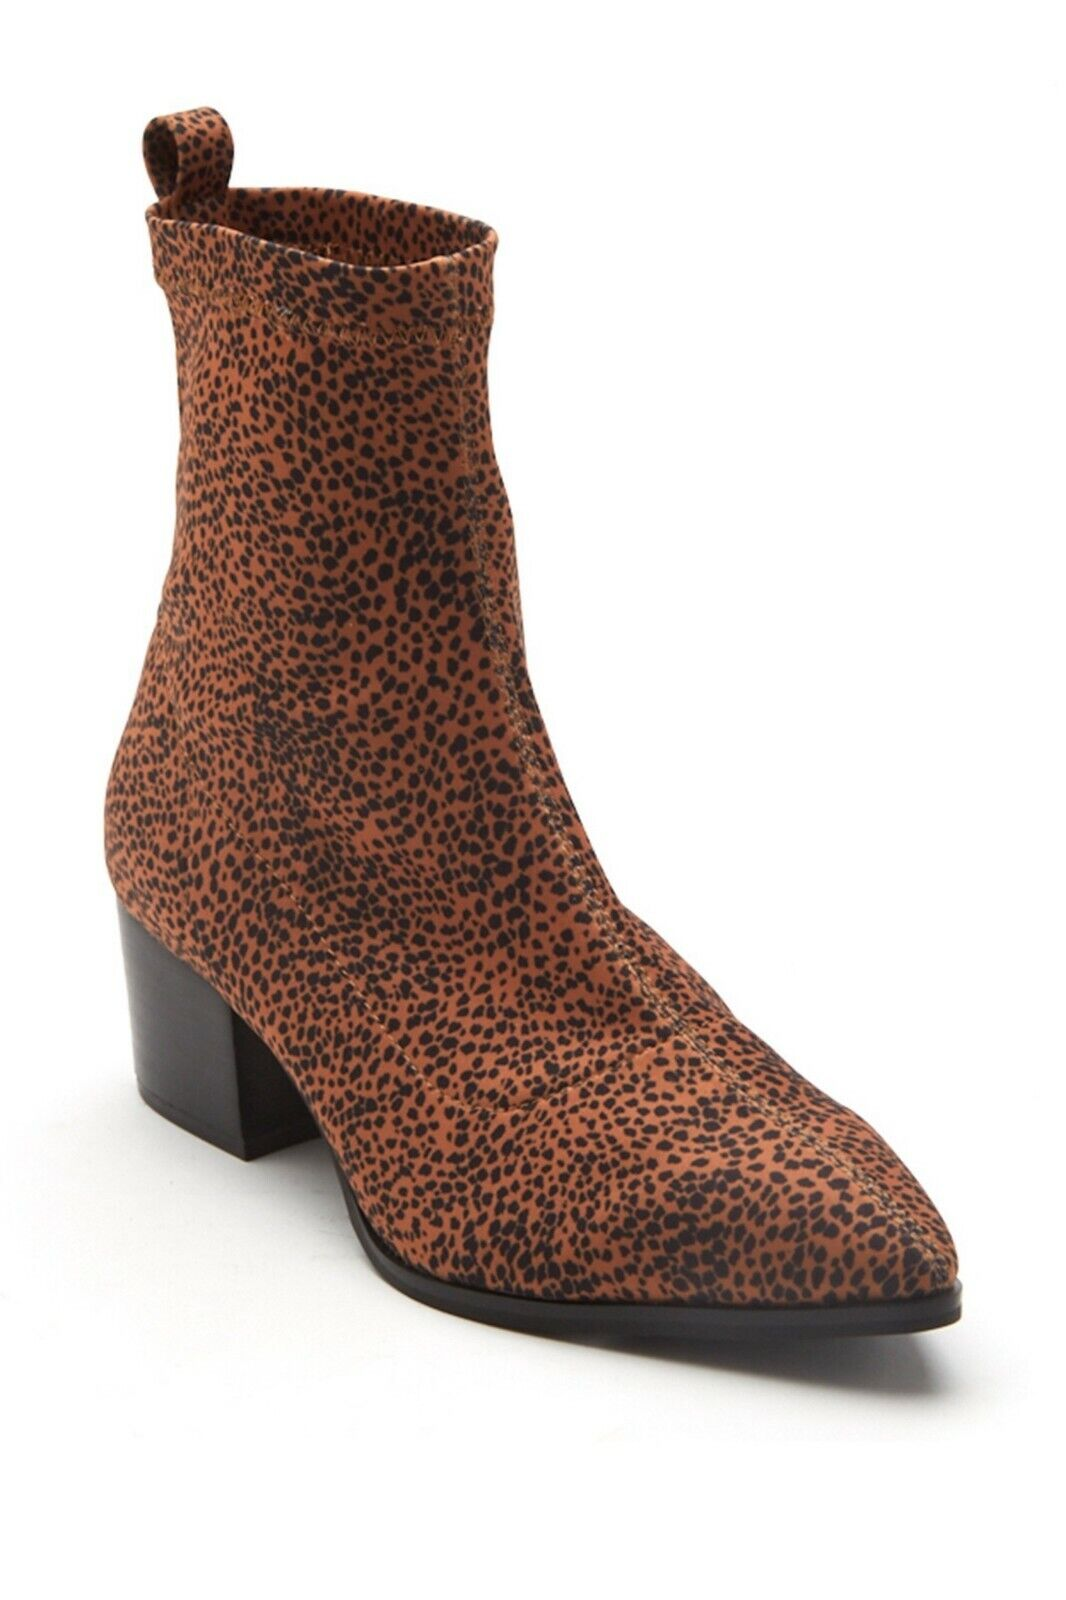 Amuse Society x MATISSE Liliana Brown Animal Print Sock Ankle Bootie Sz 5 NIB